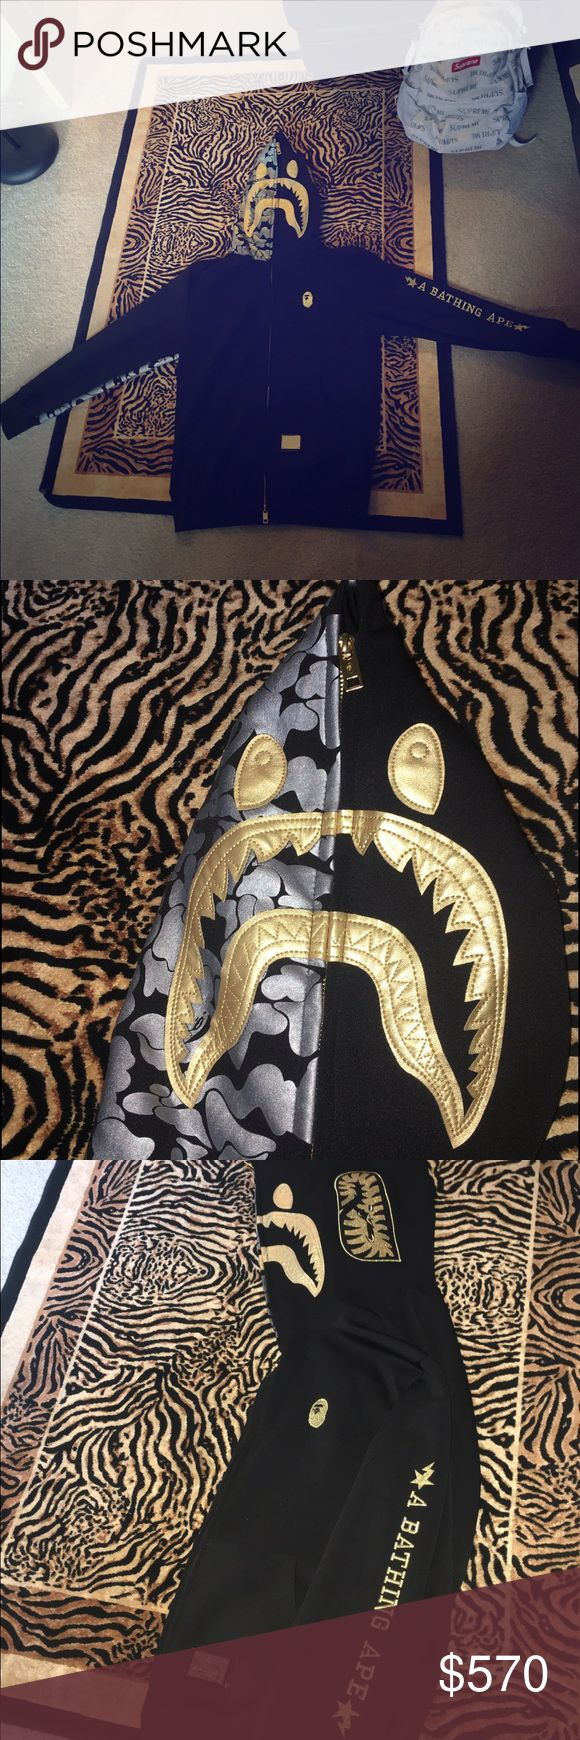 Bape Black collection Shark Hoodie (RARE) Size is an XXL but fits like L Jacket is in very good condition and has only been dry cleaned. This jacket is rare and from the bape black collection. Bape black is suppose to be a more luxurious and expensive bape for this reason the material is different. Travis scot has been seen wearing this hoodie as well. Purchased from Japan a few year ago but hardly worn and kept in very good condition ! I am selling for such a cheap price because I owe money…